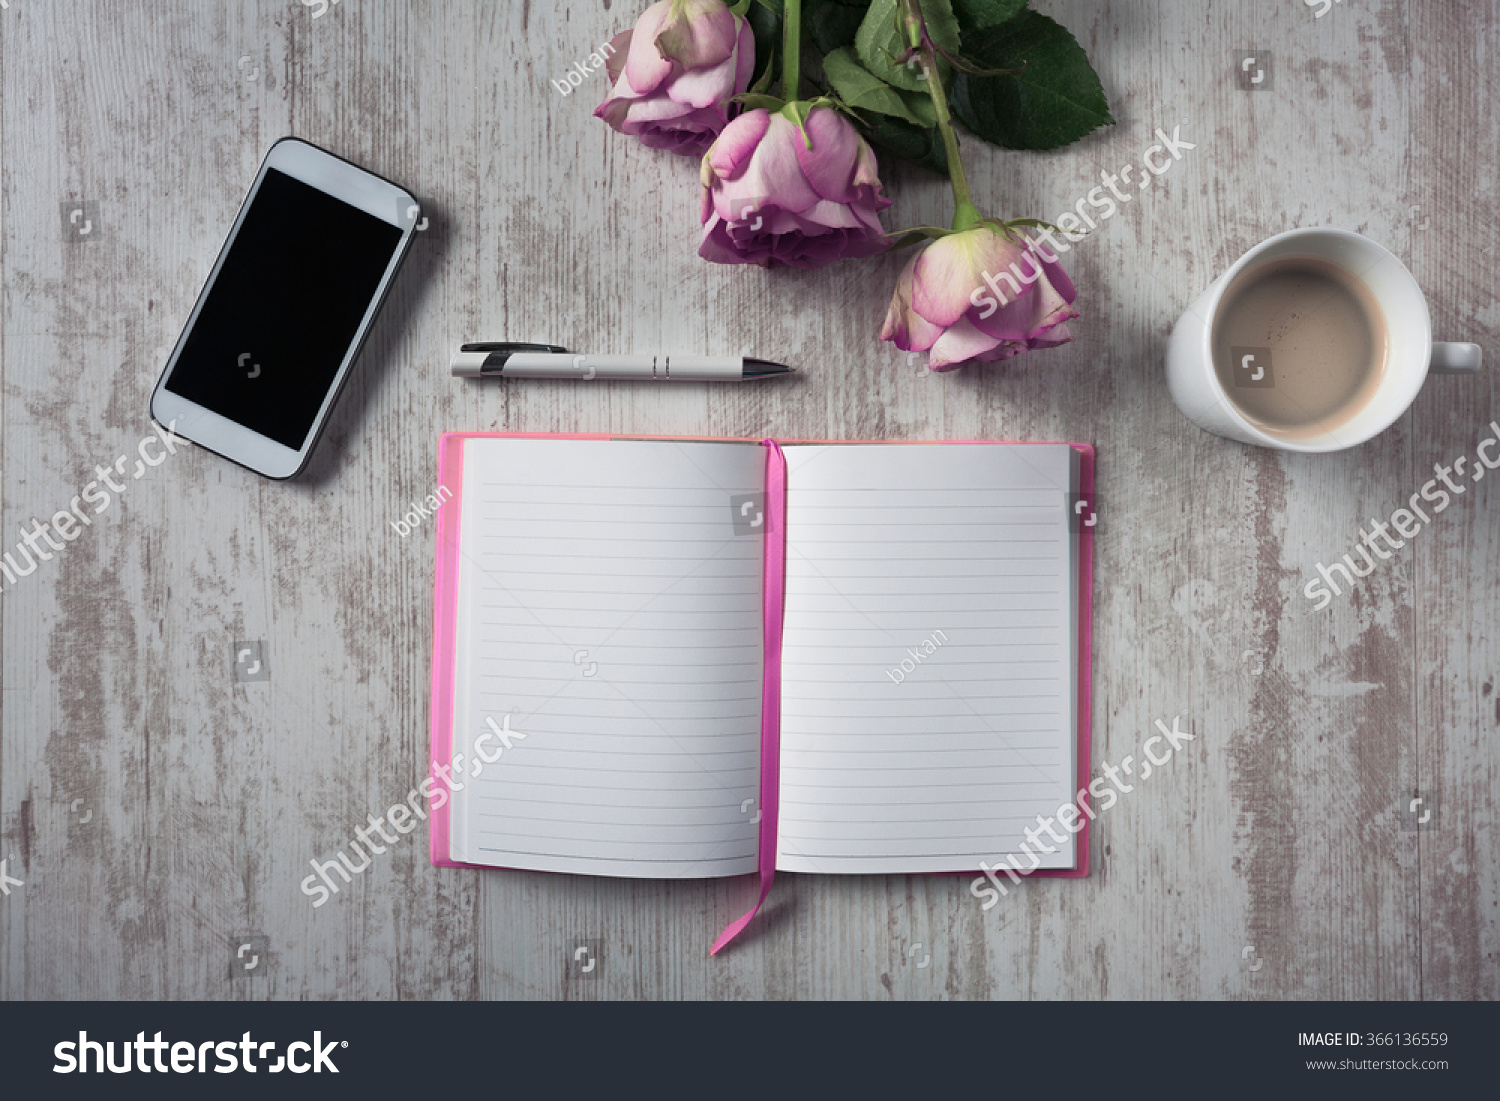 High angle view of open empty notebook mobile phone cup of coffee and bouquet of roses on white wooden table